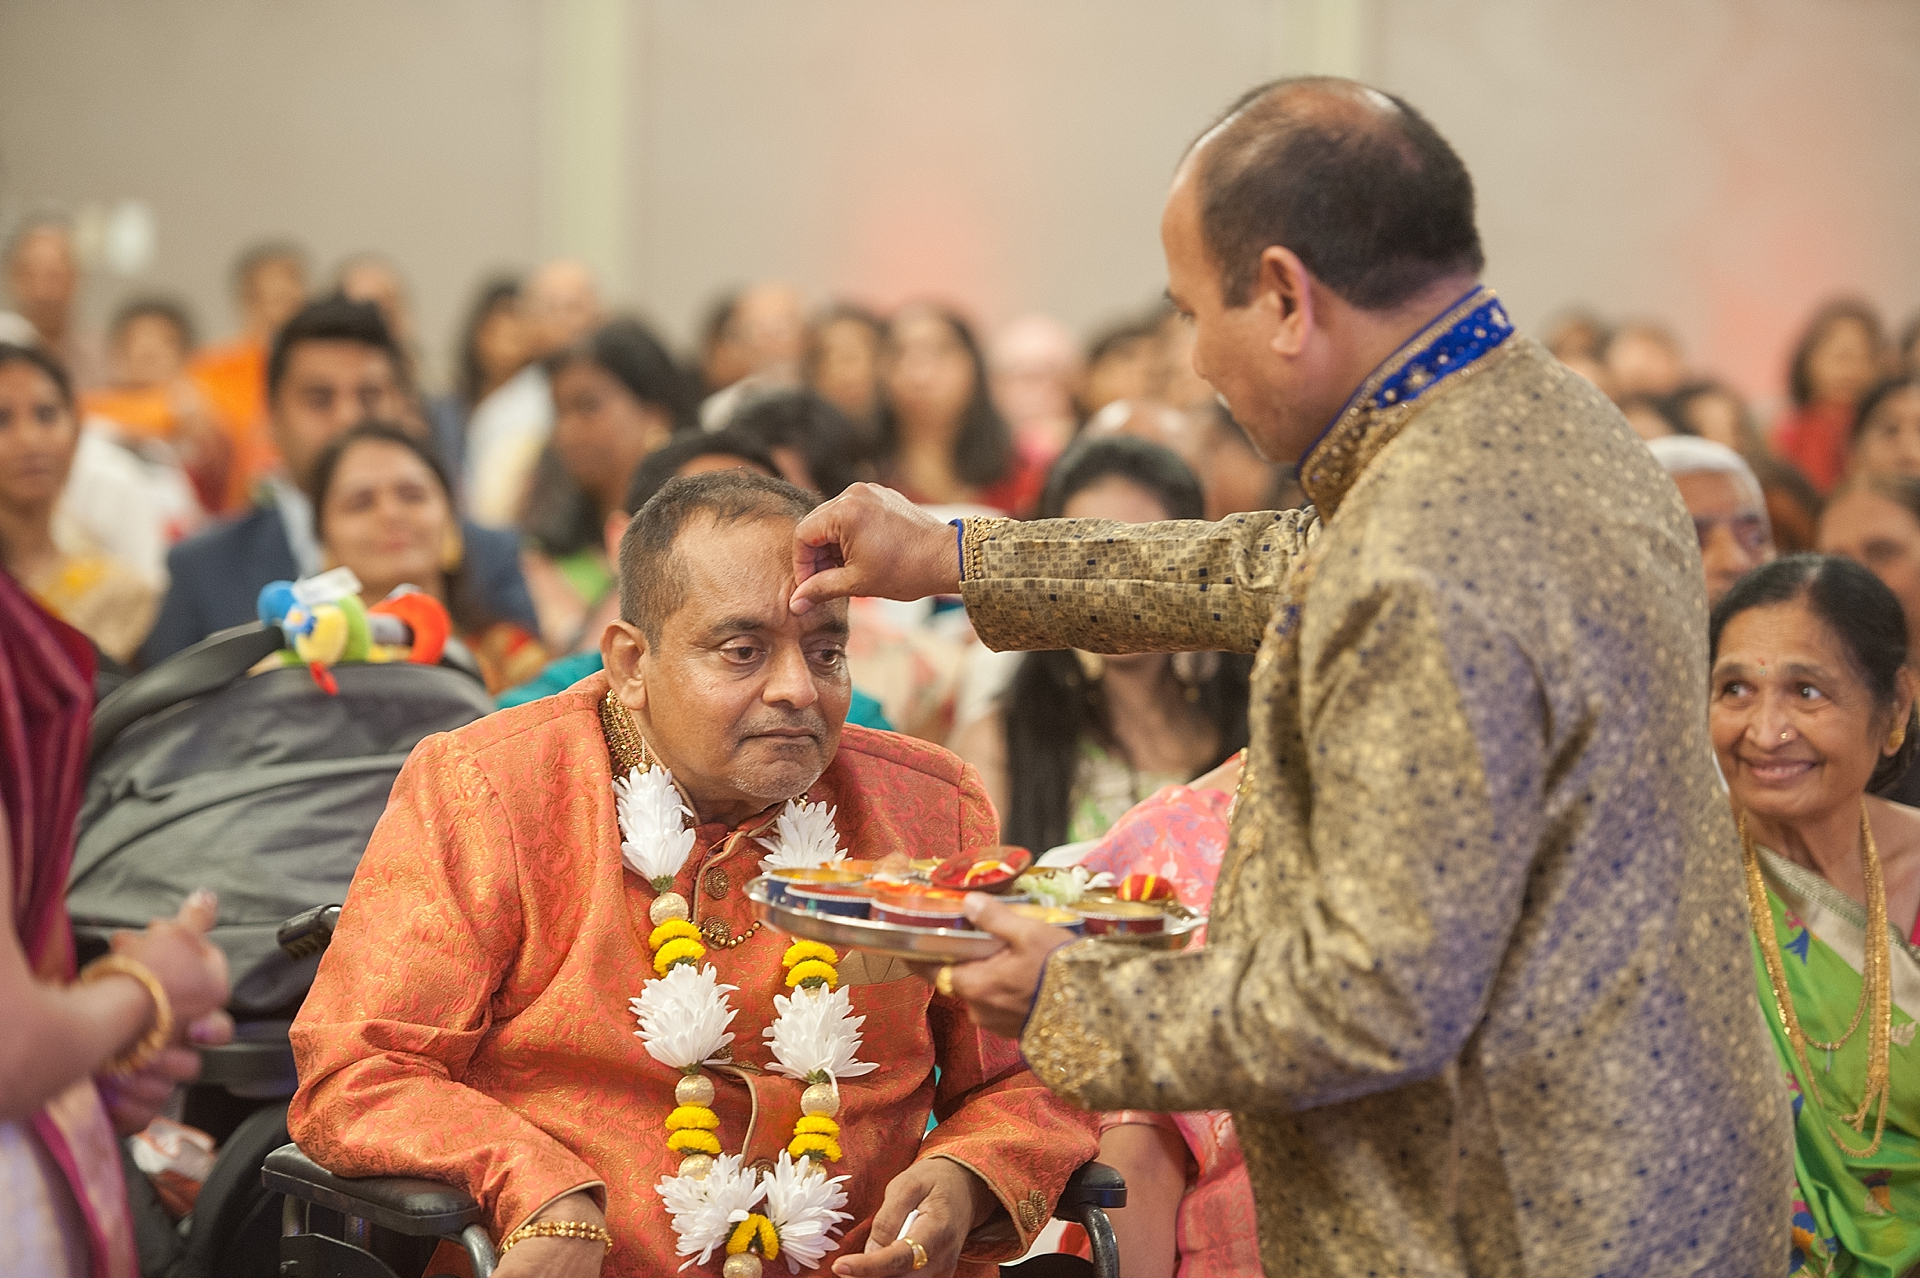 Prexa_Harry_Columbus_Crown_Plaza_Indian_Wedding0072.jpg